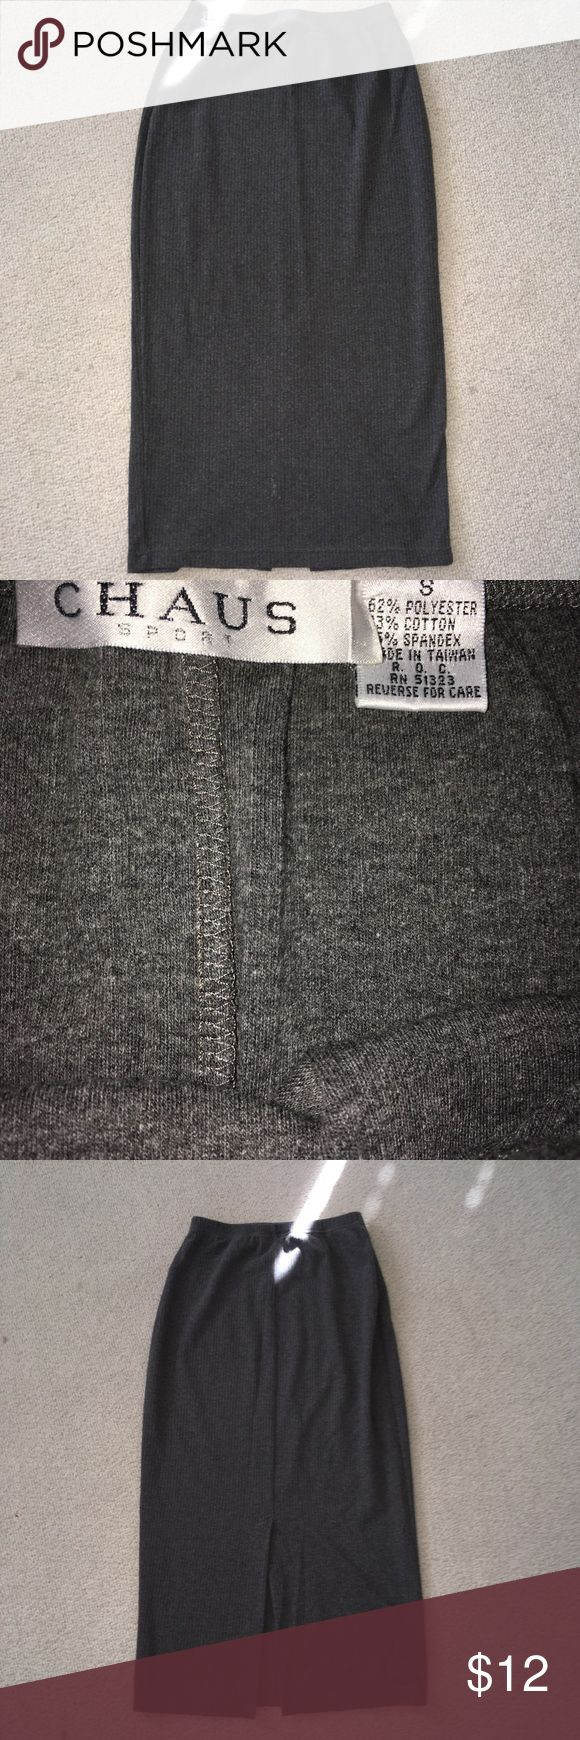 🌻Chaus szS gray stretch cotton maxi skirt!🌻 🌻Chaus size Small gray stretch cotton super cute maxi skirt!  35 inch length with back kick pleat. Elastic waist. Gently worn.  Smoke free home.  Taking offers!!🌻 Chaus Skirts